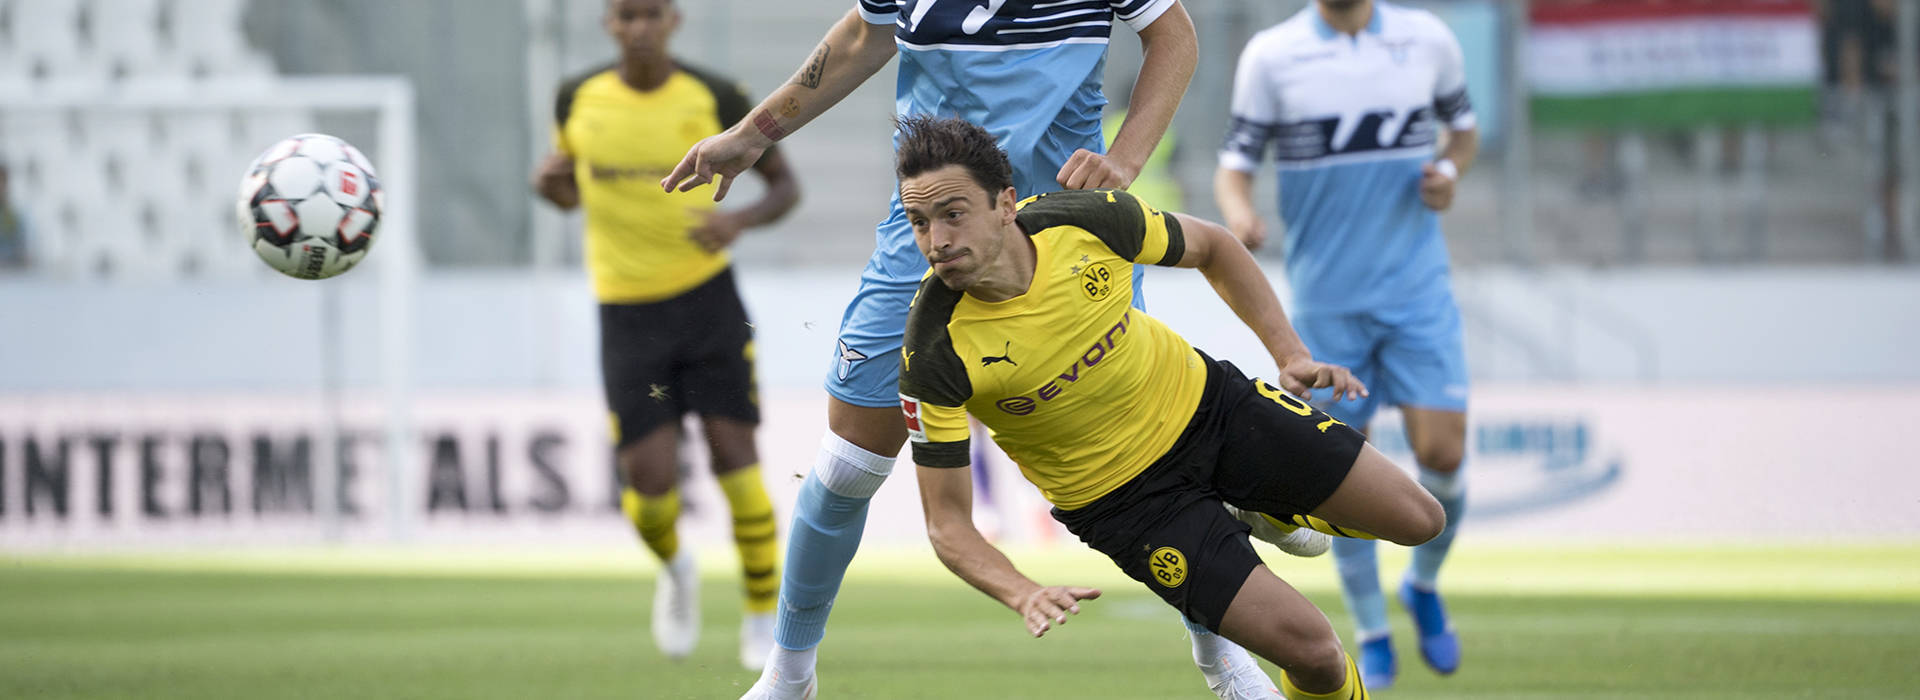 BVB round off pre-season with 1-0 victory over Lazio